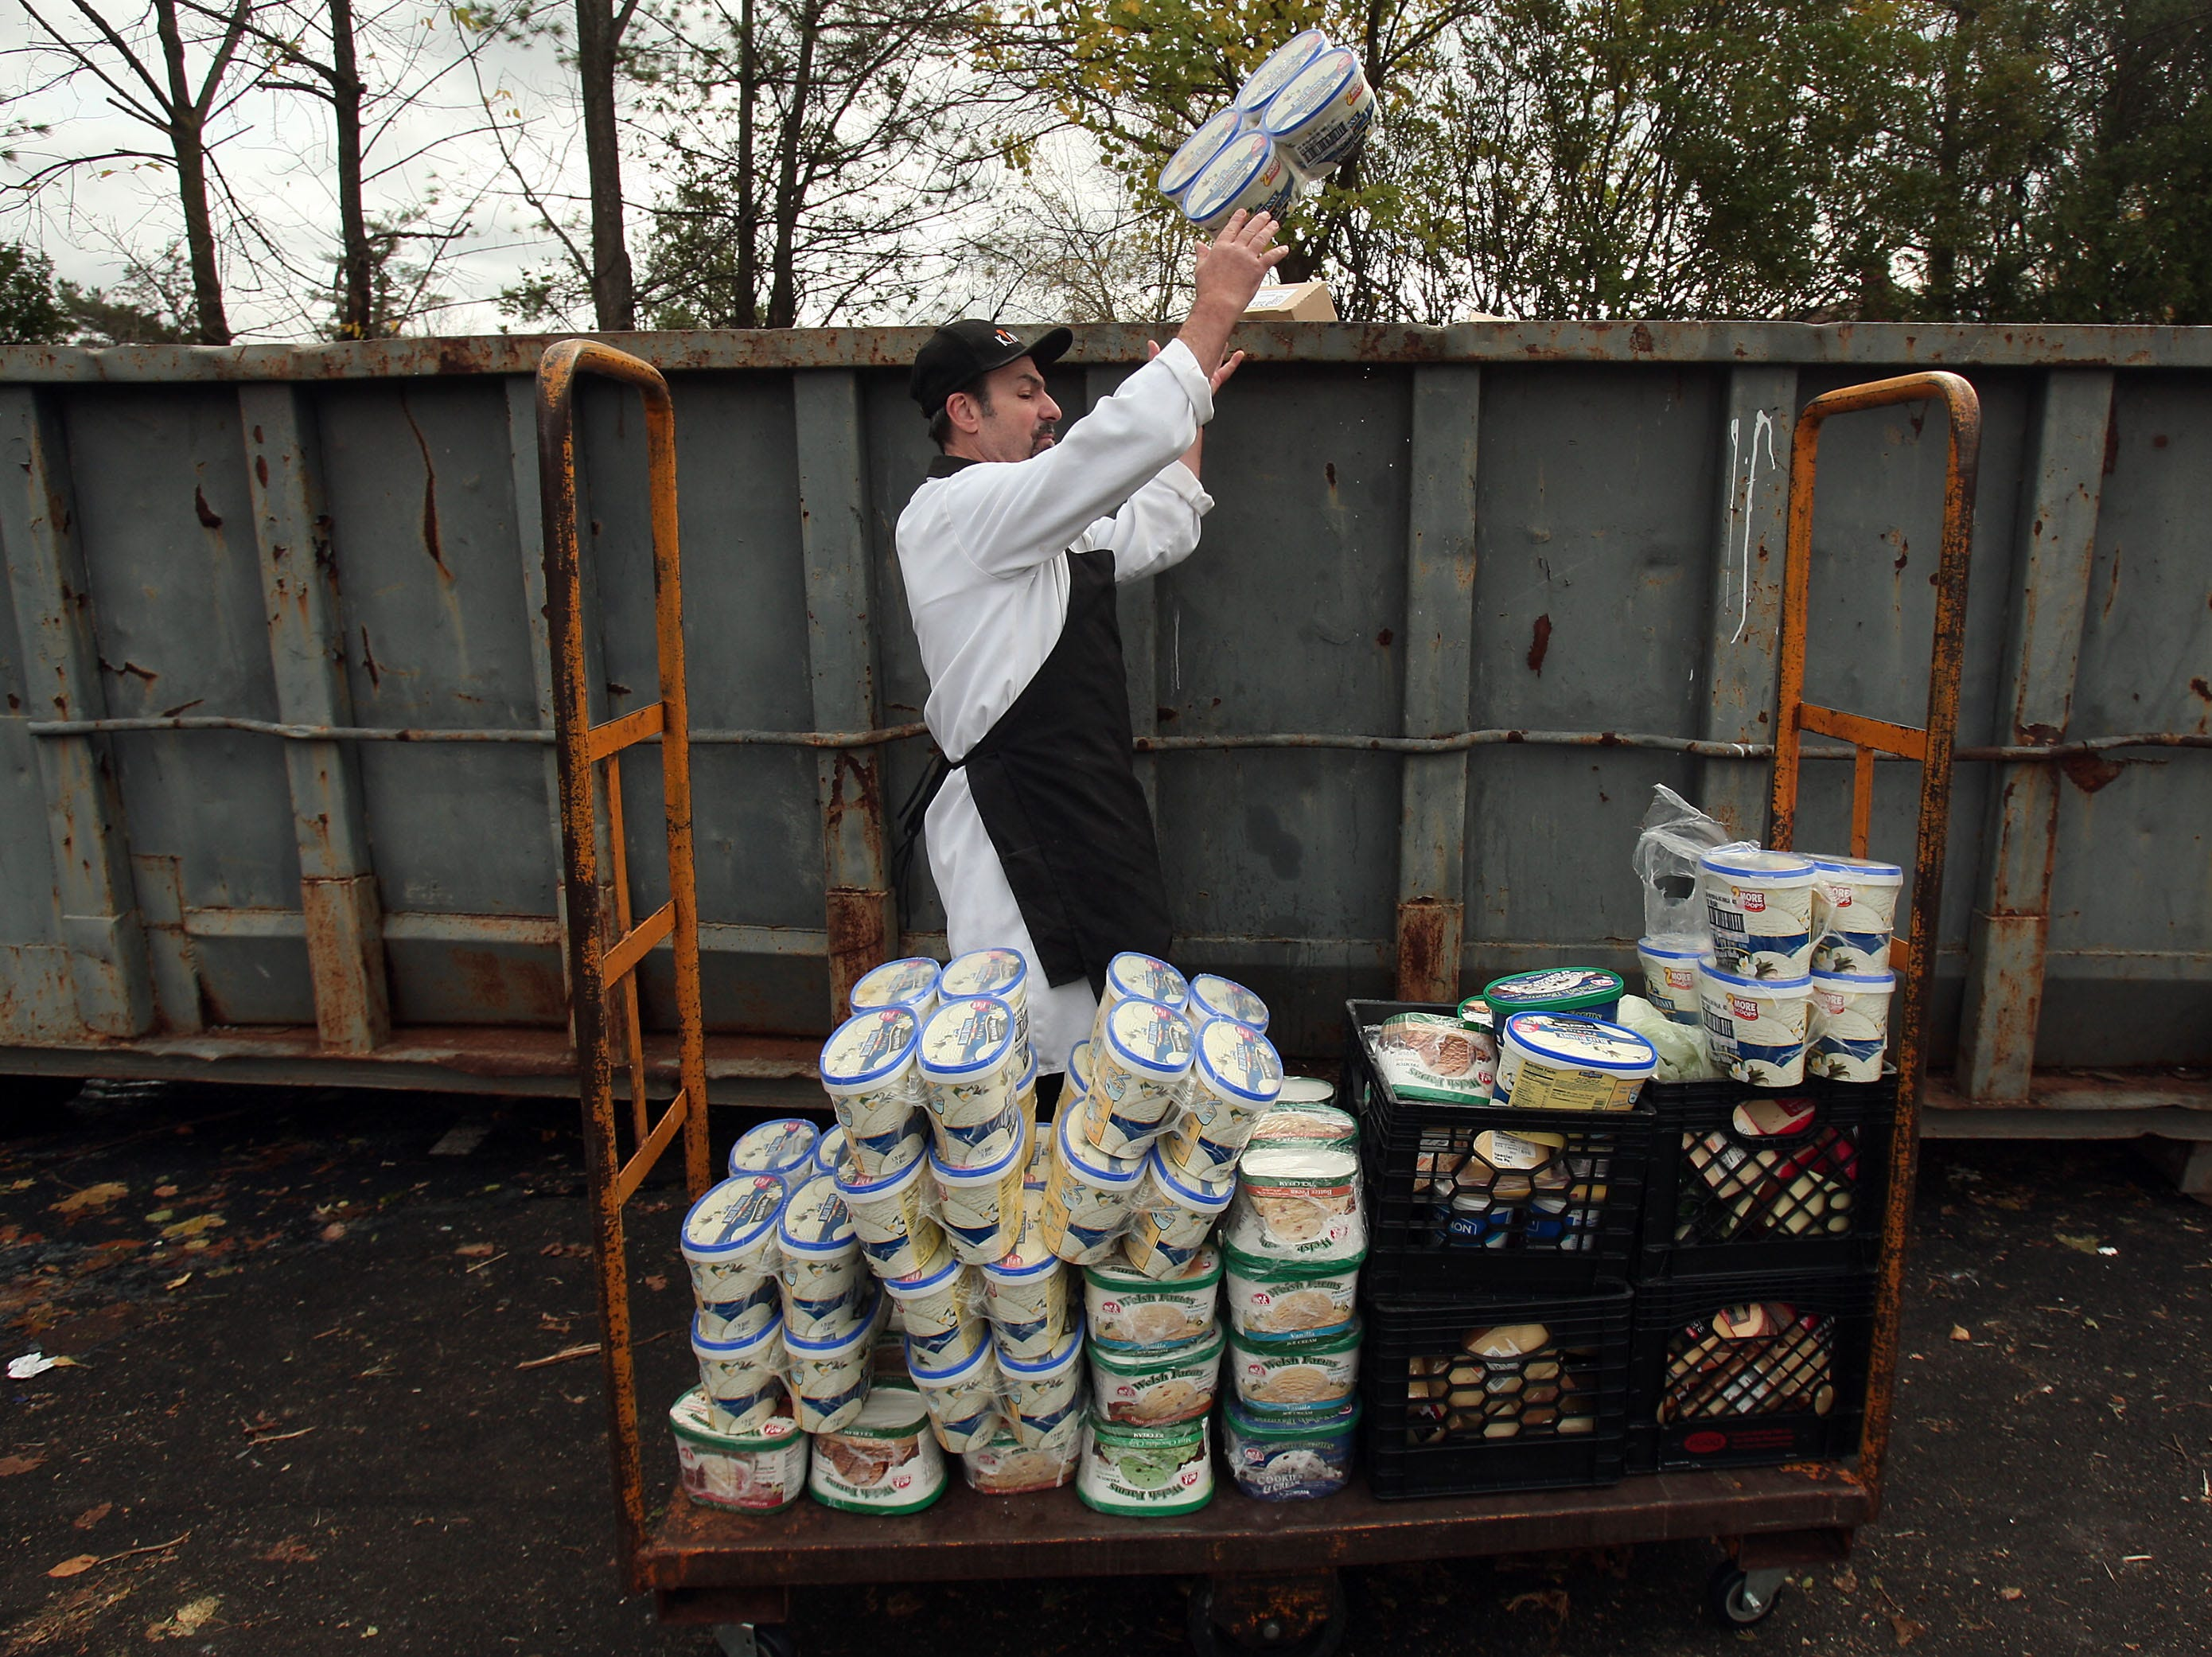 Chatham, NJ- November 1, 2012--Meat Manager B.B. O'Hara of Lake Parsippany, NJ throws perishables into a dumpster at Kings in Chatham, NJ after the supermarket lost most of its power after Hurricane Sandy devastated the eastern seaboard.